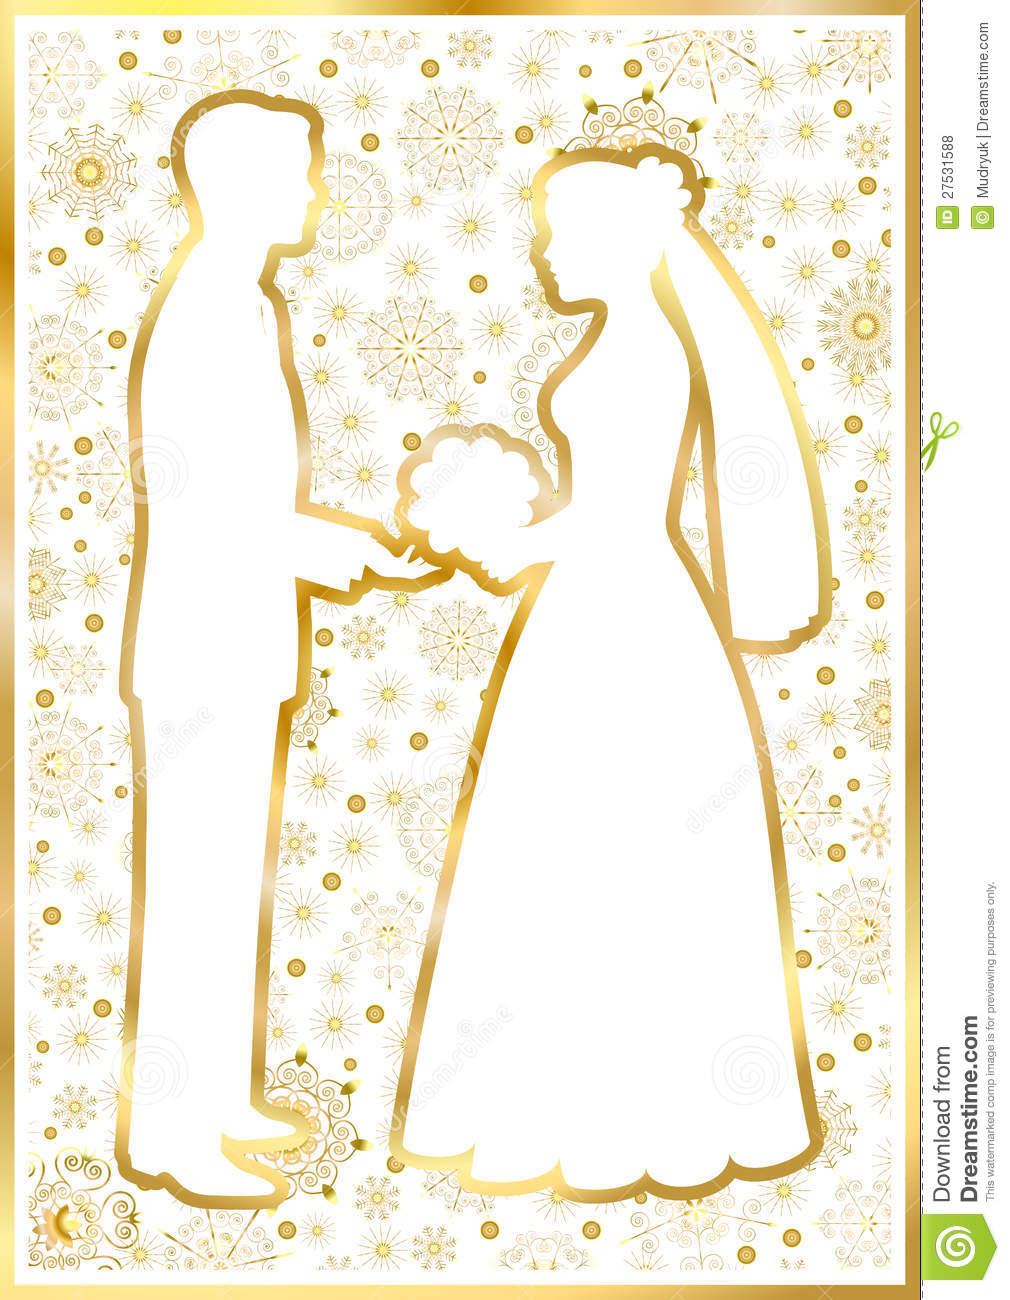 Gold Silhouettes Of The Bride And Groom Royalty Free Stock Photos ...